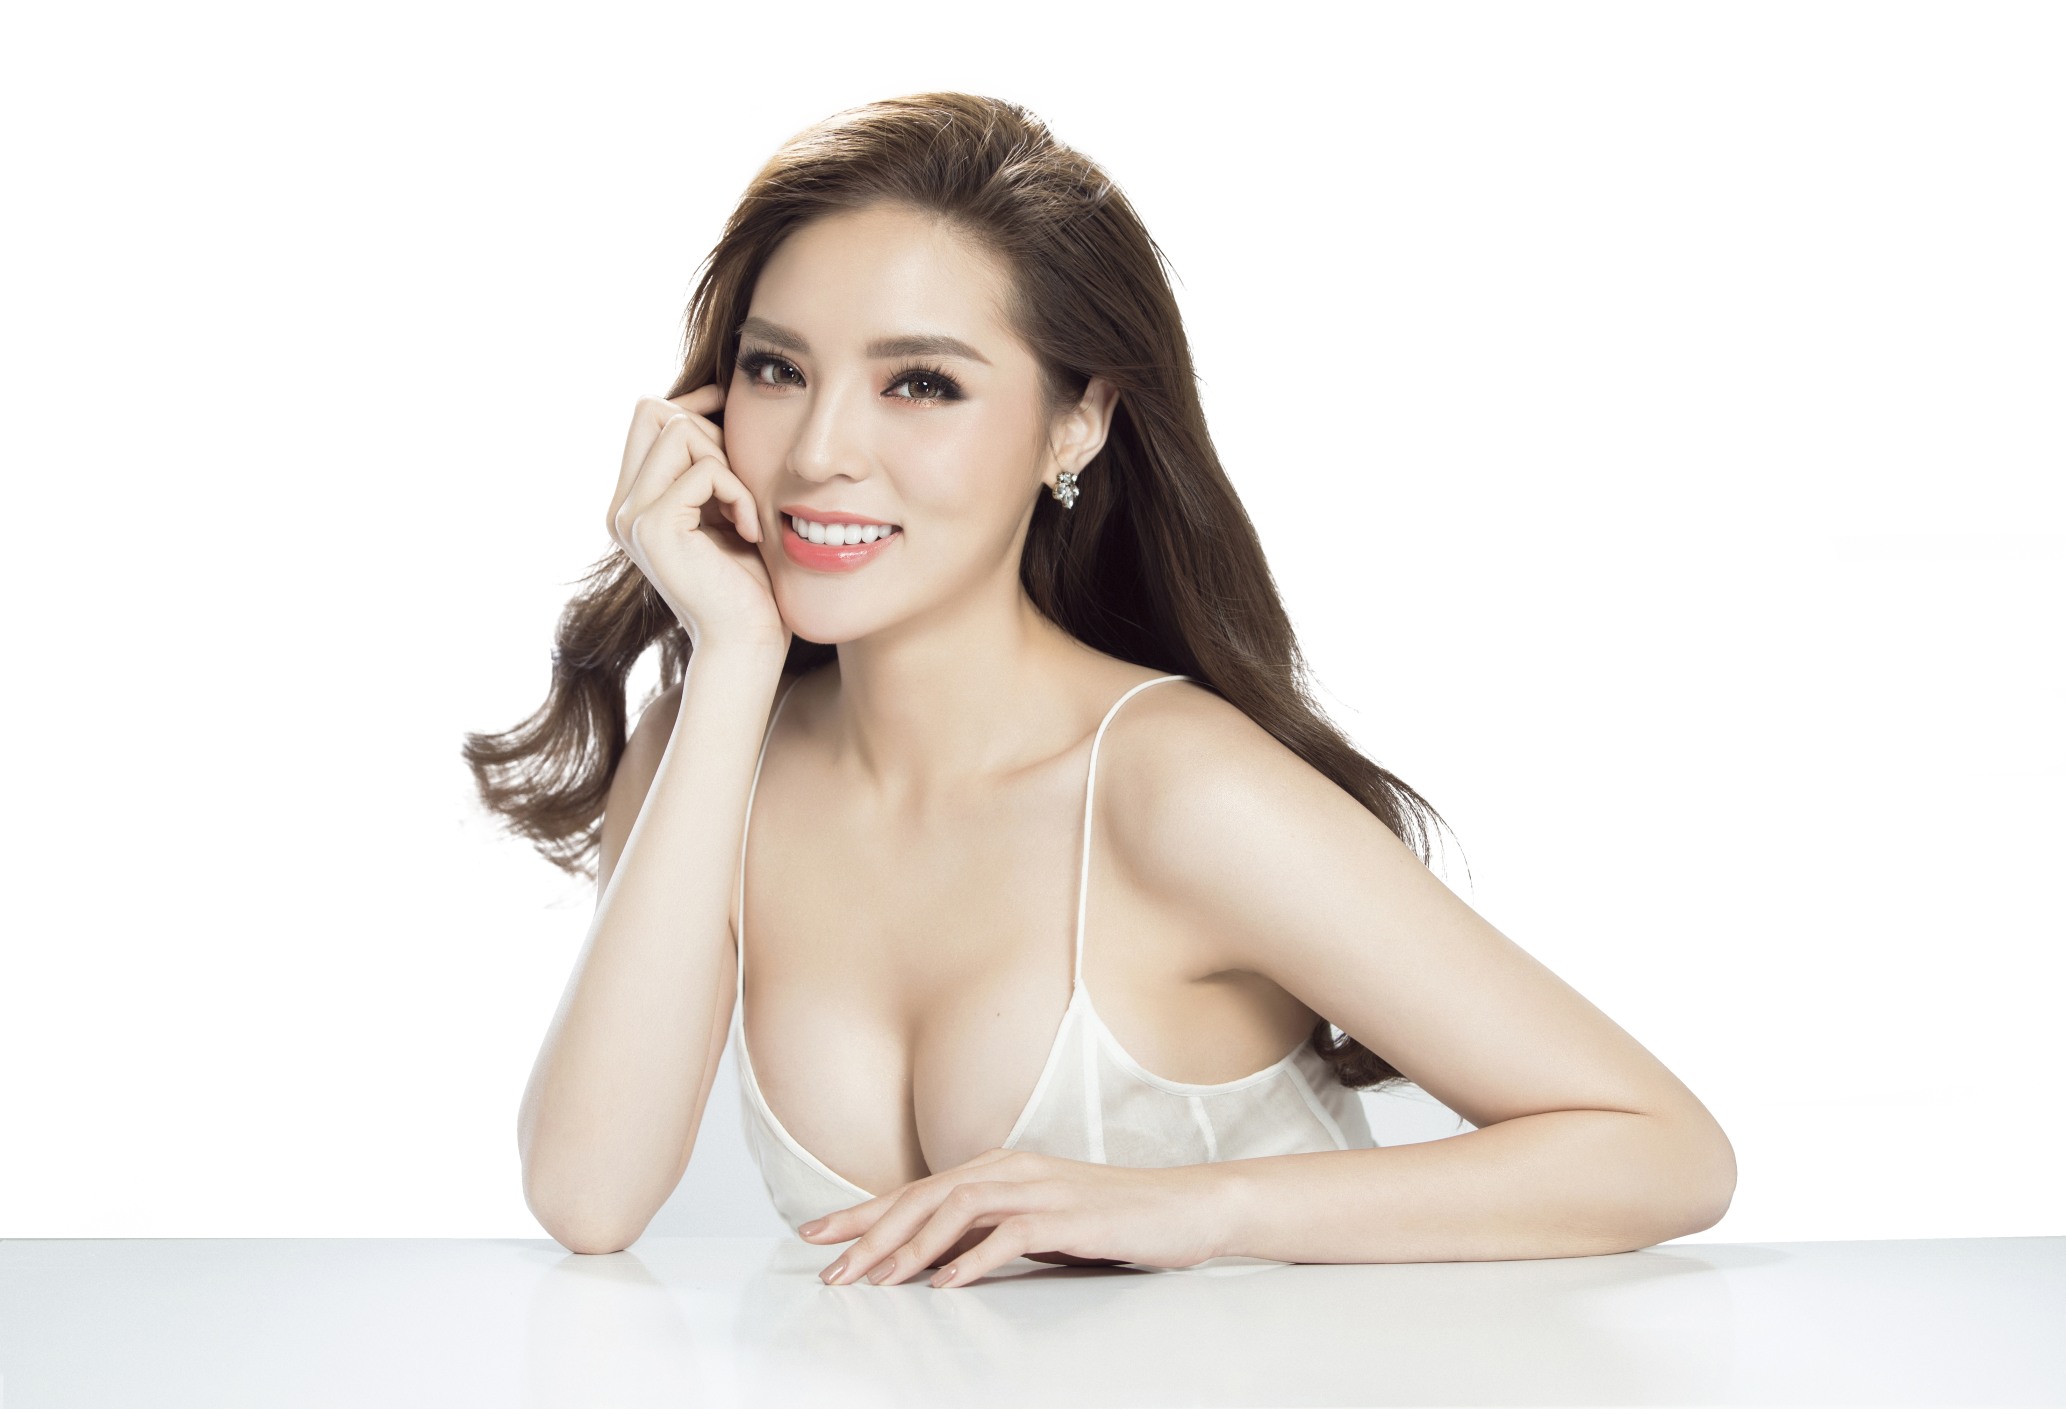 Is breast augmentation surgery dangerous?